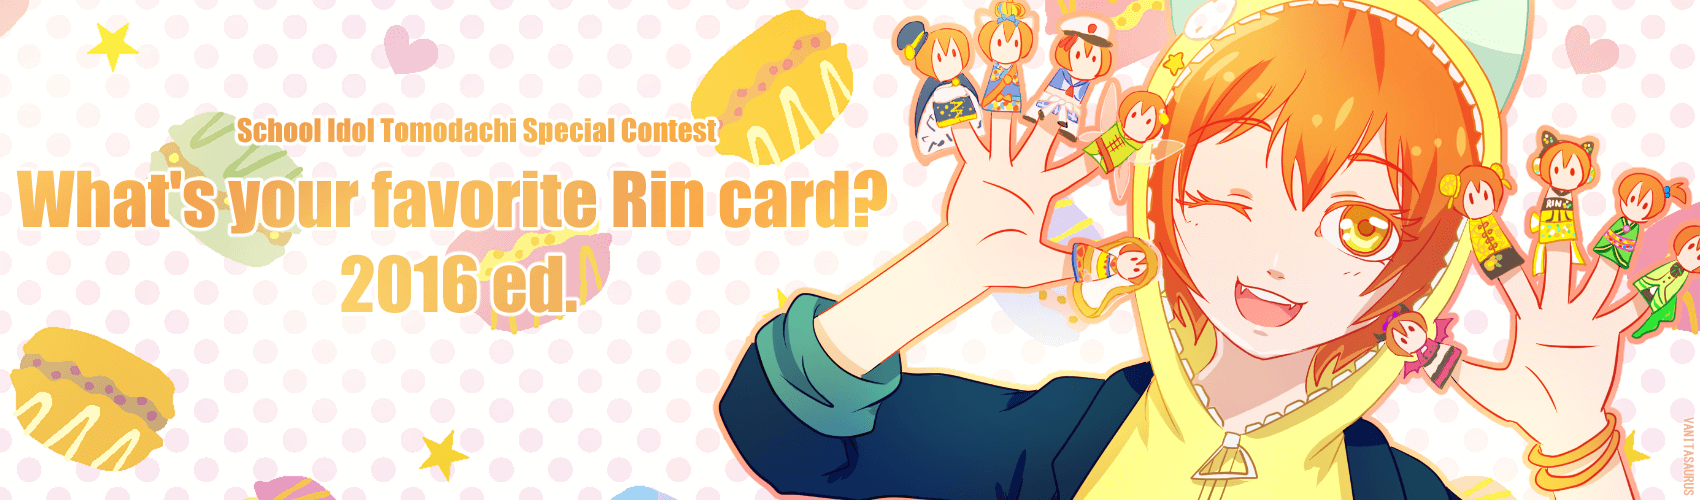 What's your favorite Rin card? 2016 ed.